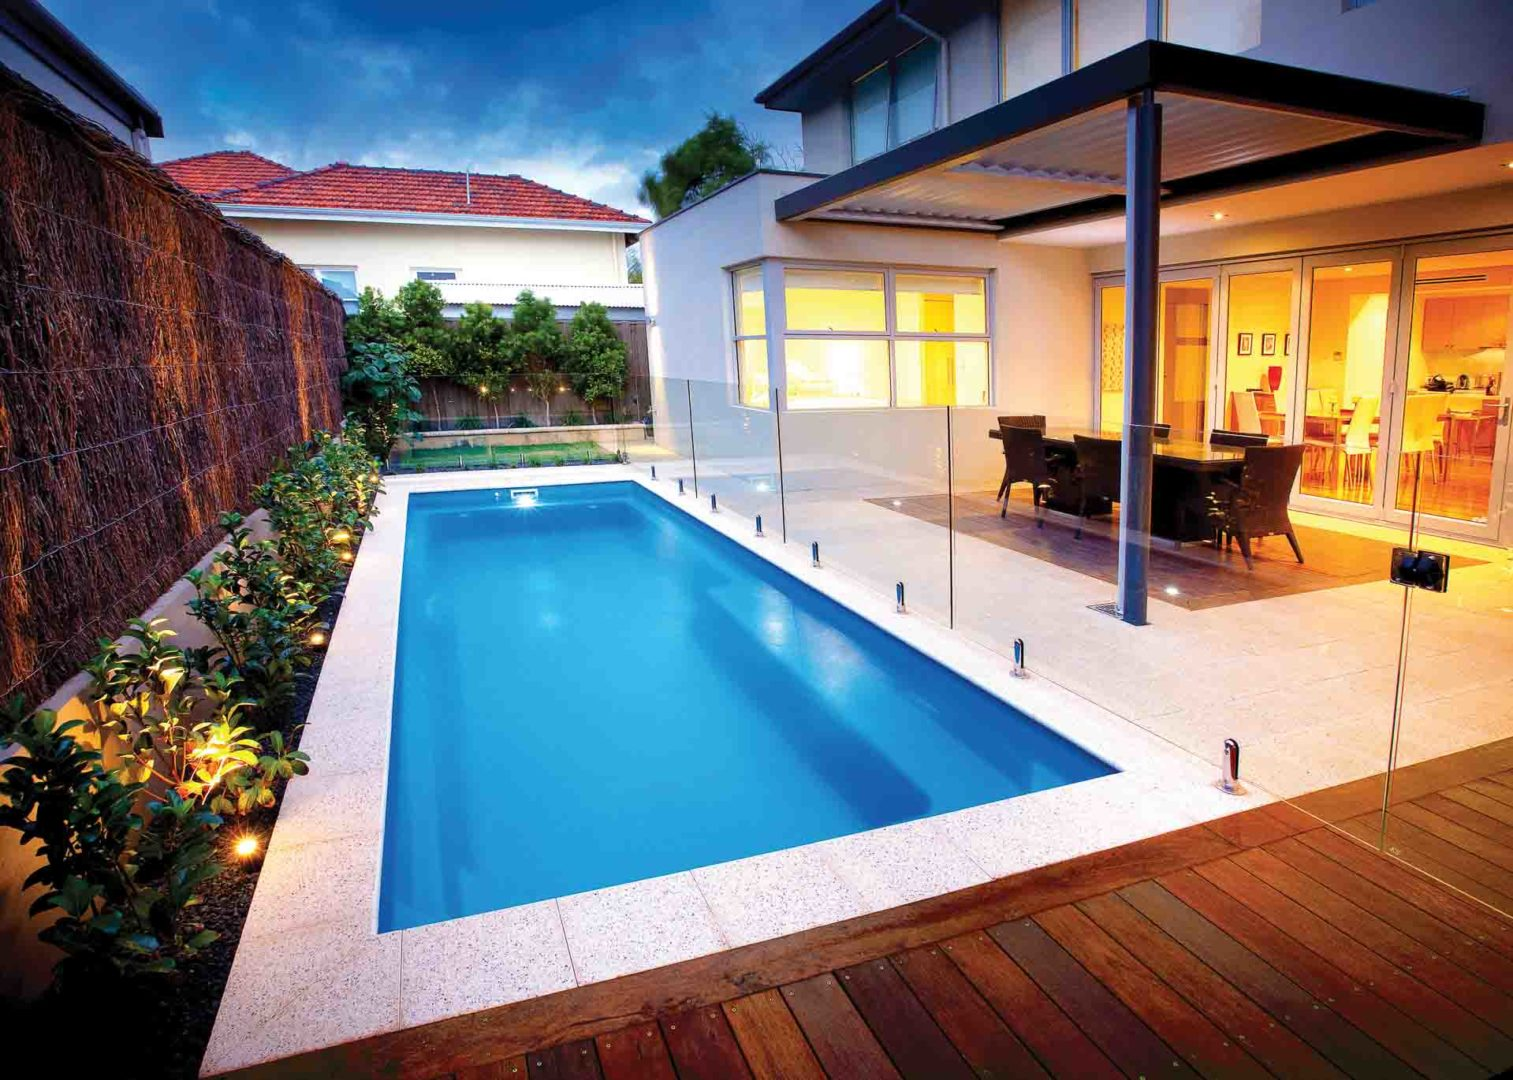 Concrete and fibreglass swimming pools: 10 things to ask your pool builder - What kinds of after-sales service do you offer, Australian Outdoor Living.